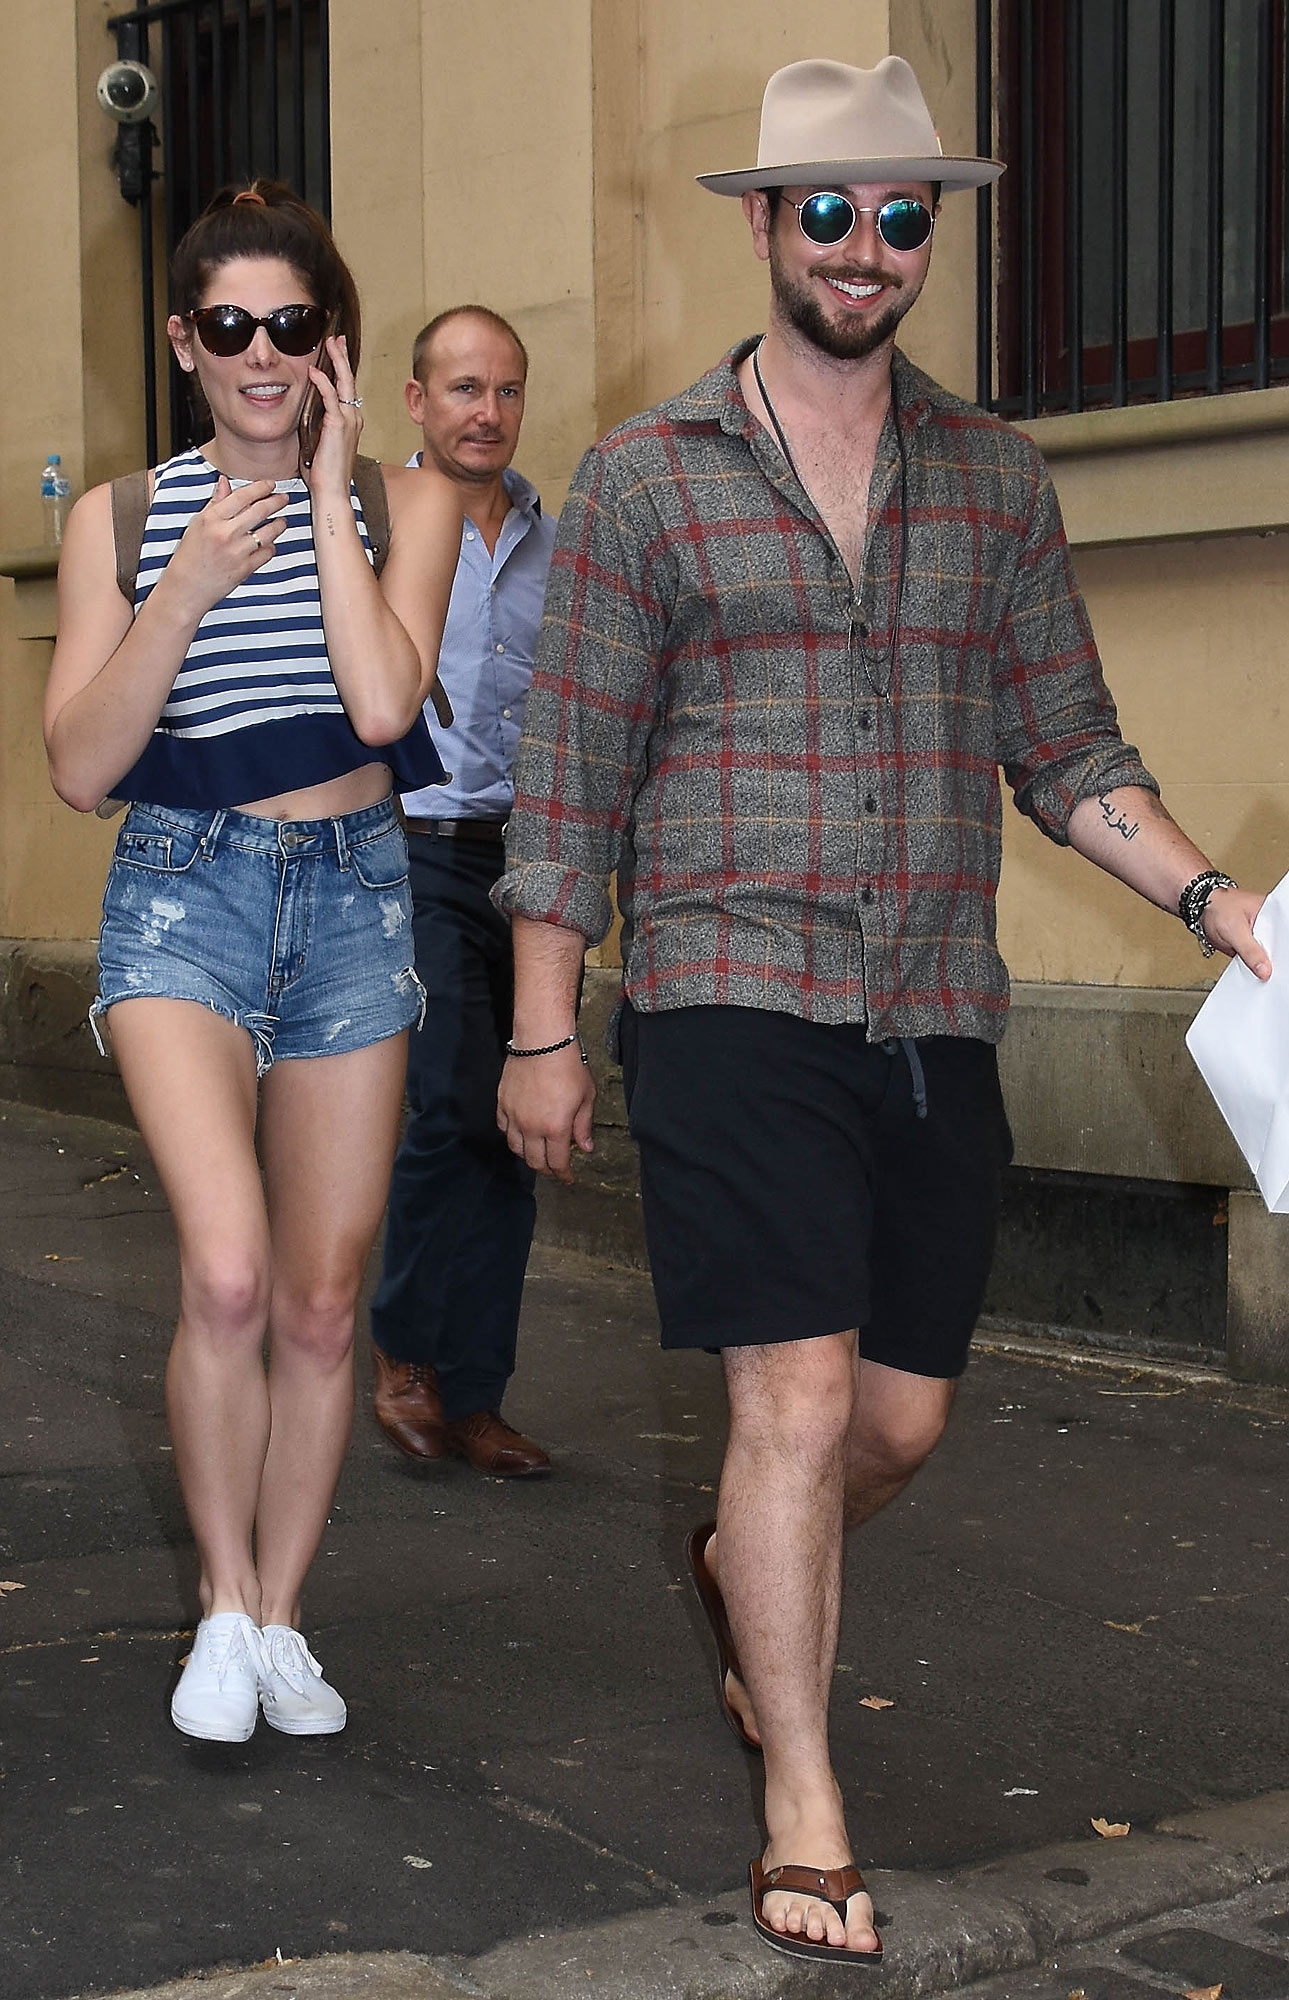 EXCLUSIVE: Actress Ashley Greene and fiancee Paul Khoury spotted in Sydney for first time since engagement announcement